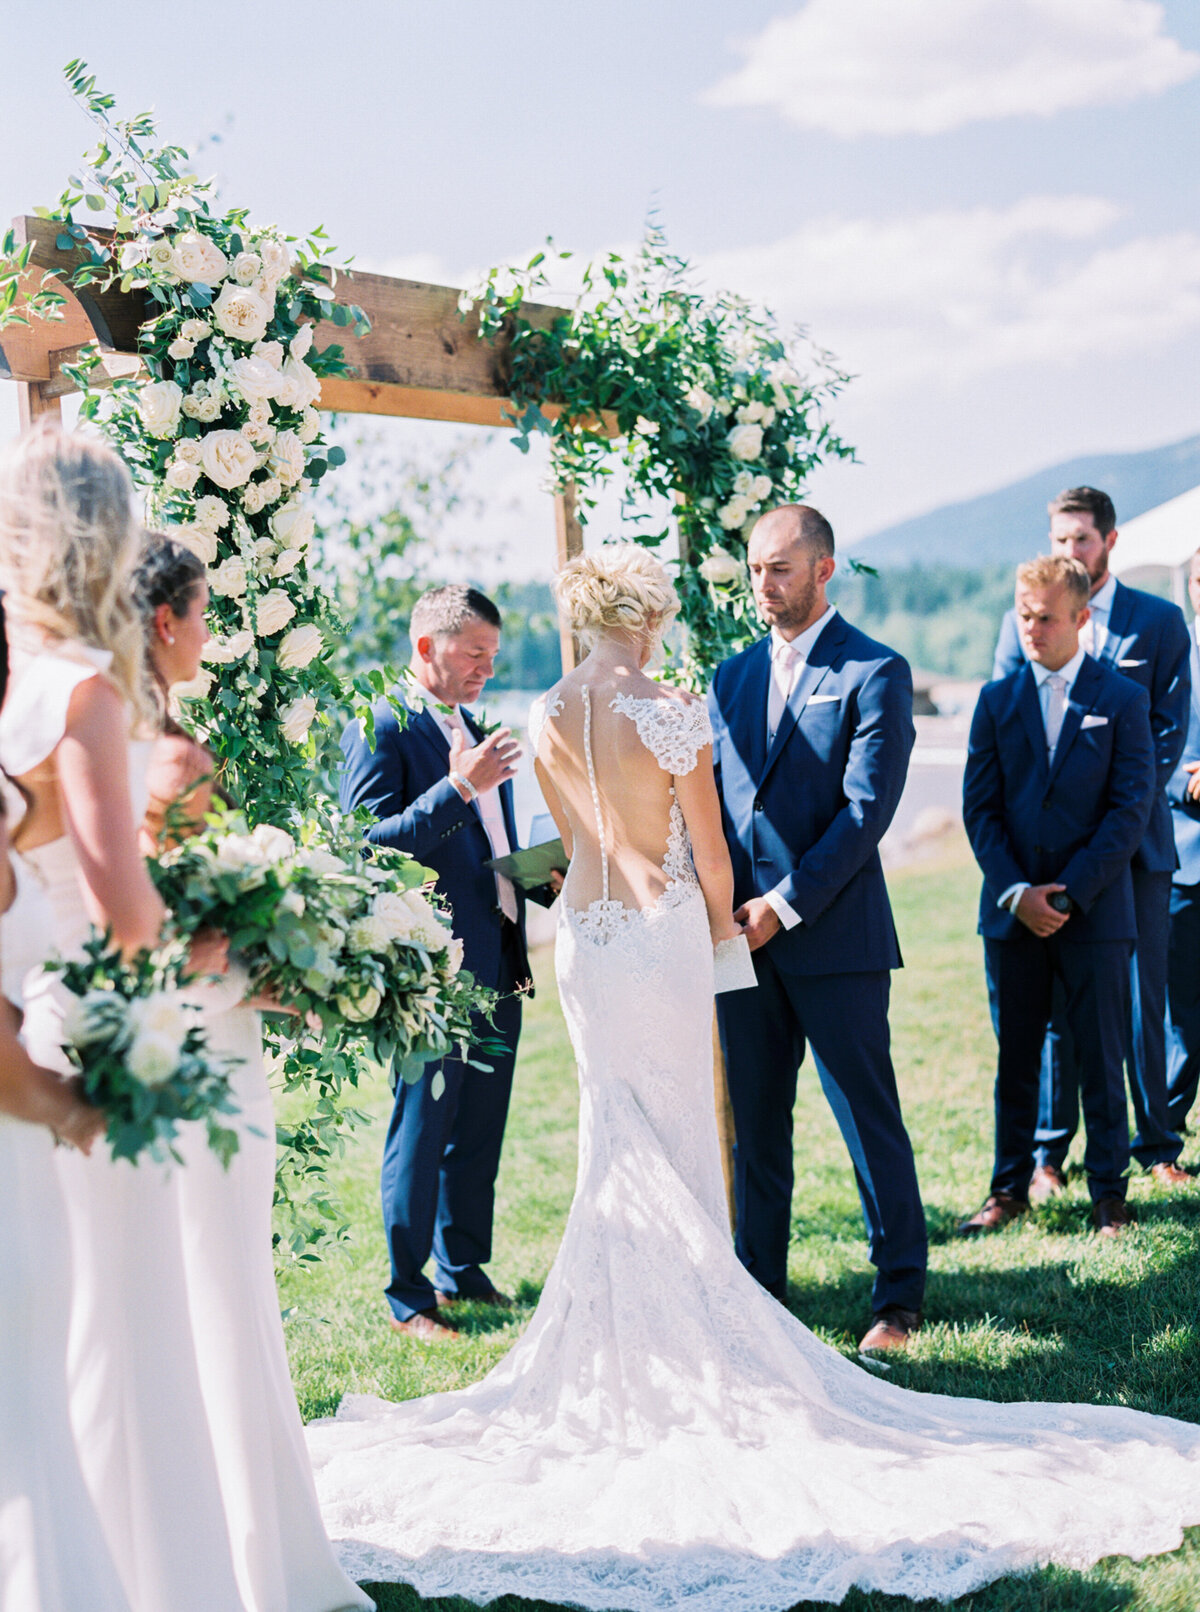 Mimi & Zach | Whitefish, Montana | Mary Claire Photography | Arizona & Destination Fine Art Wedding Photographer